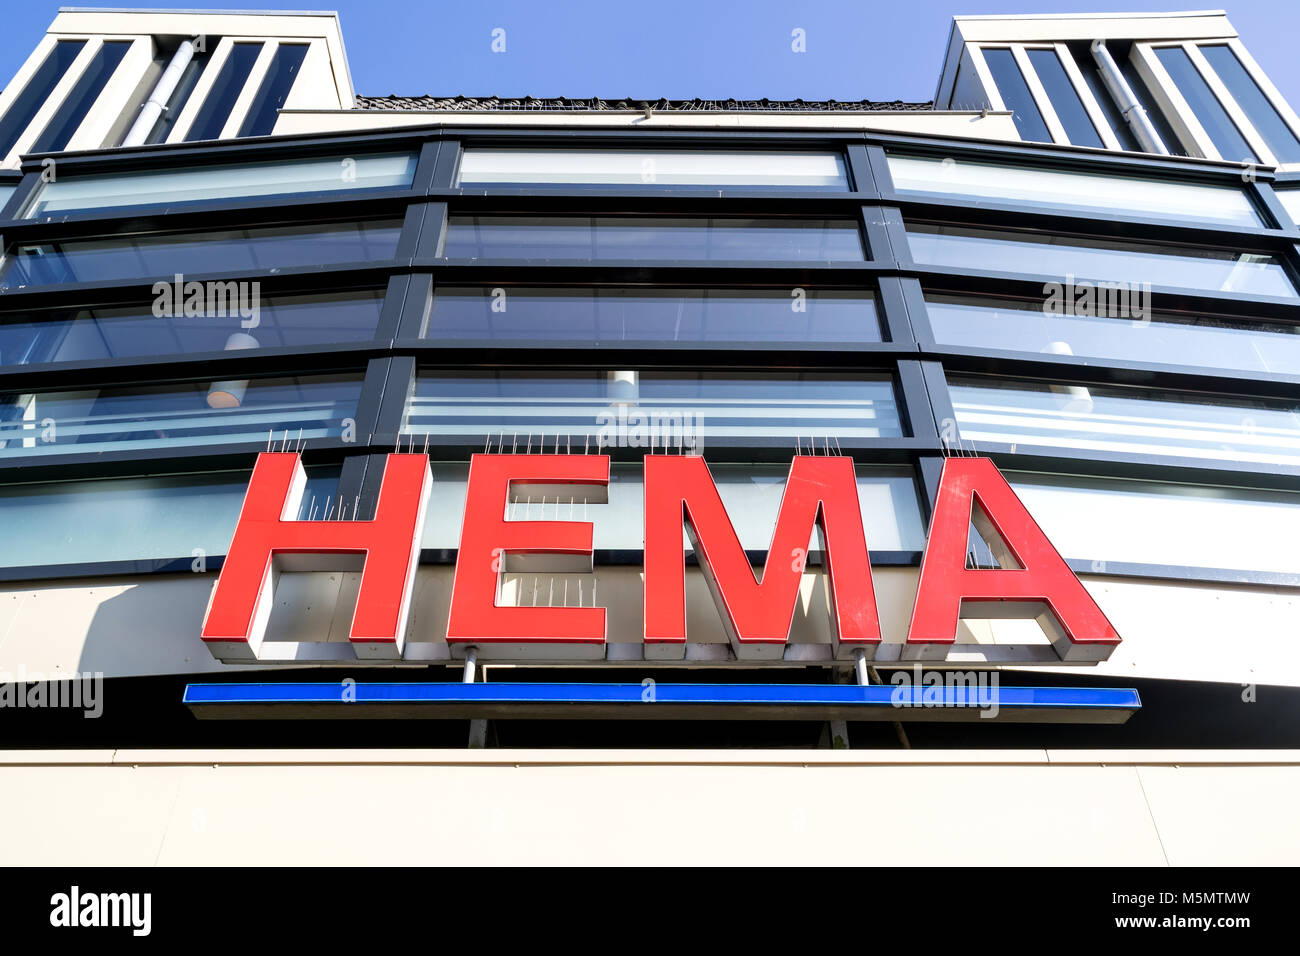 Hema Netherlands Stock Photos & Hema Netherlands Stock